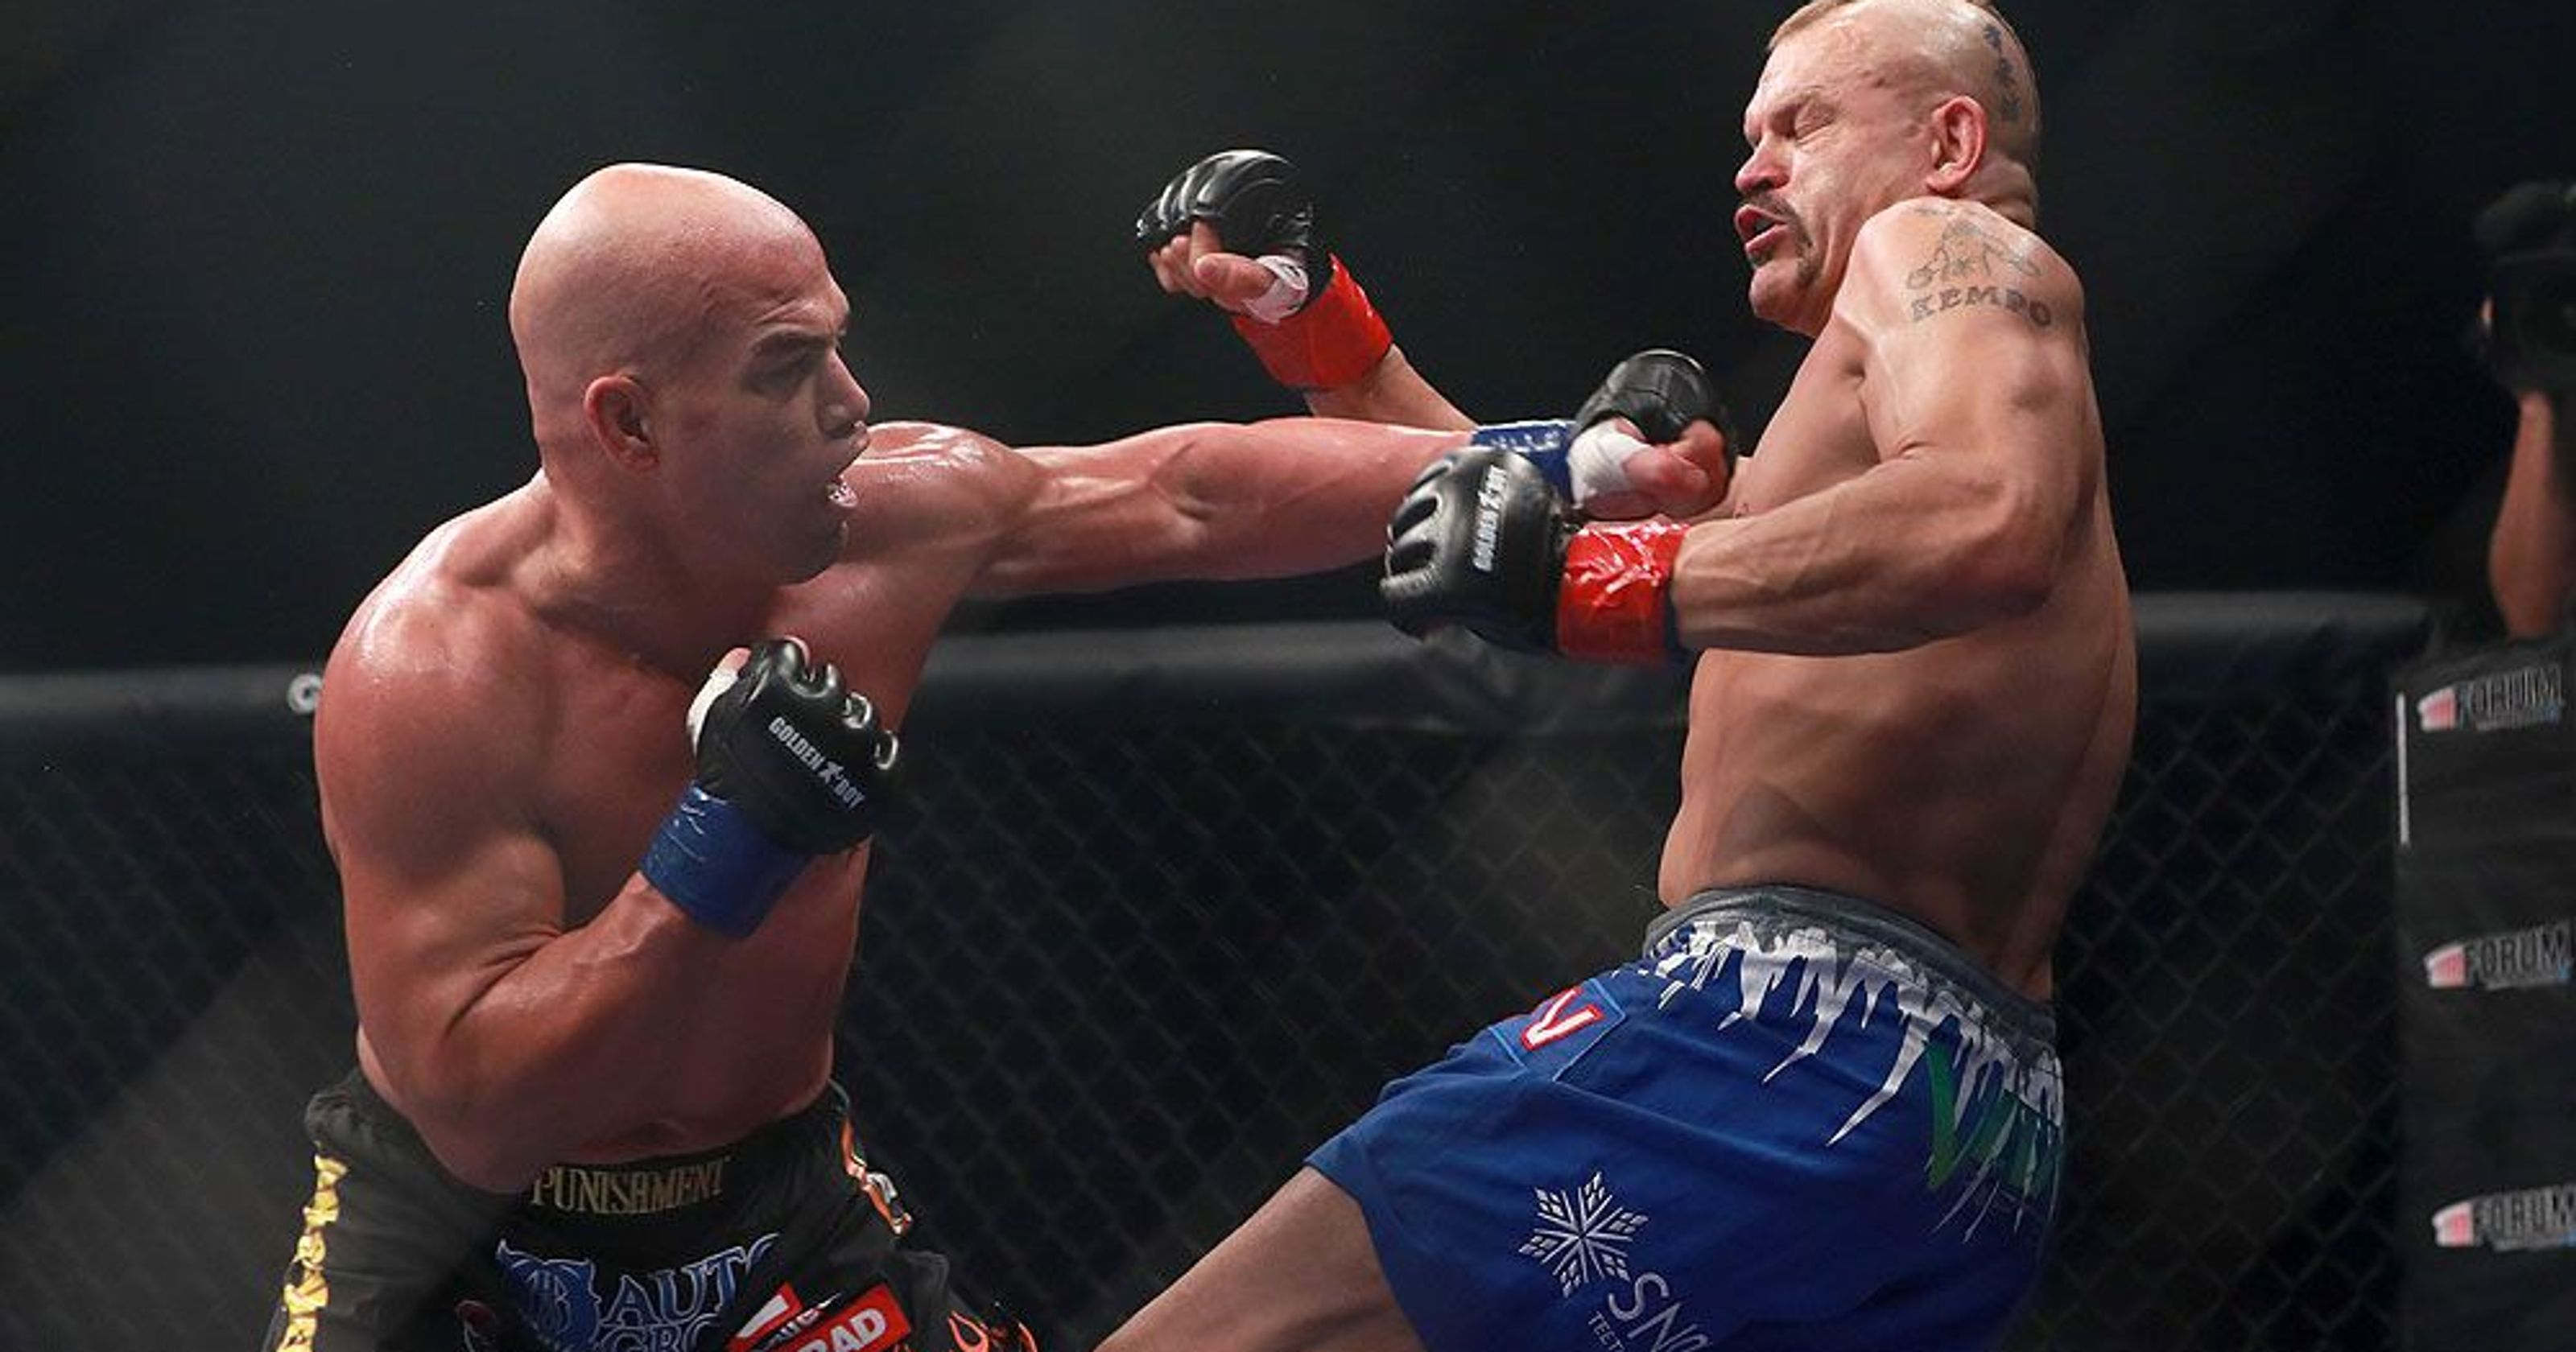 Tito Ortiz sends a message to Jon Jones after Liddell KO: I took care of your work for you! -